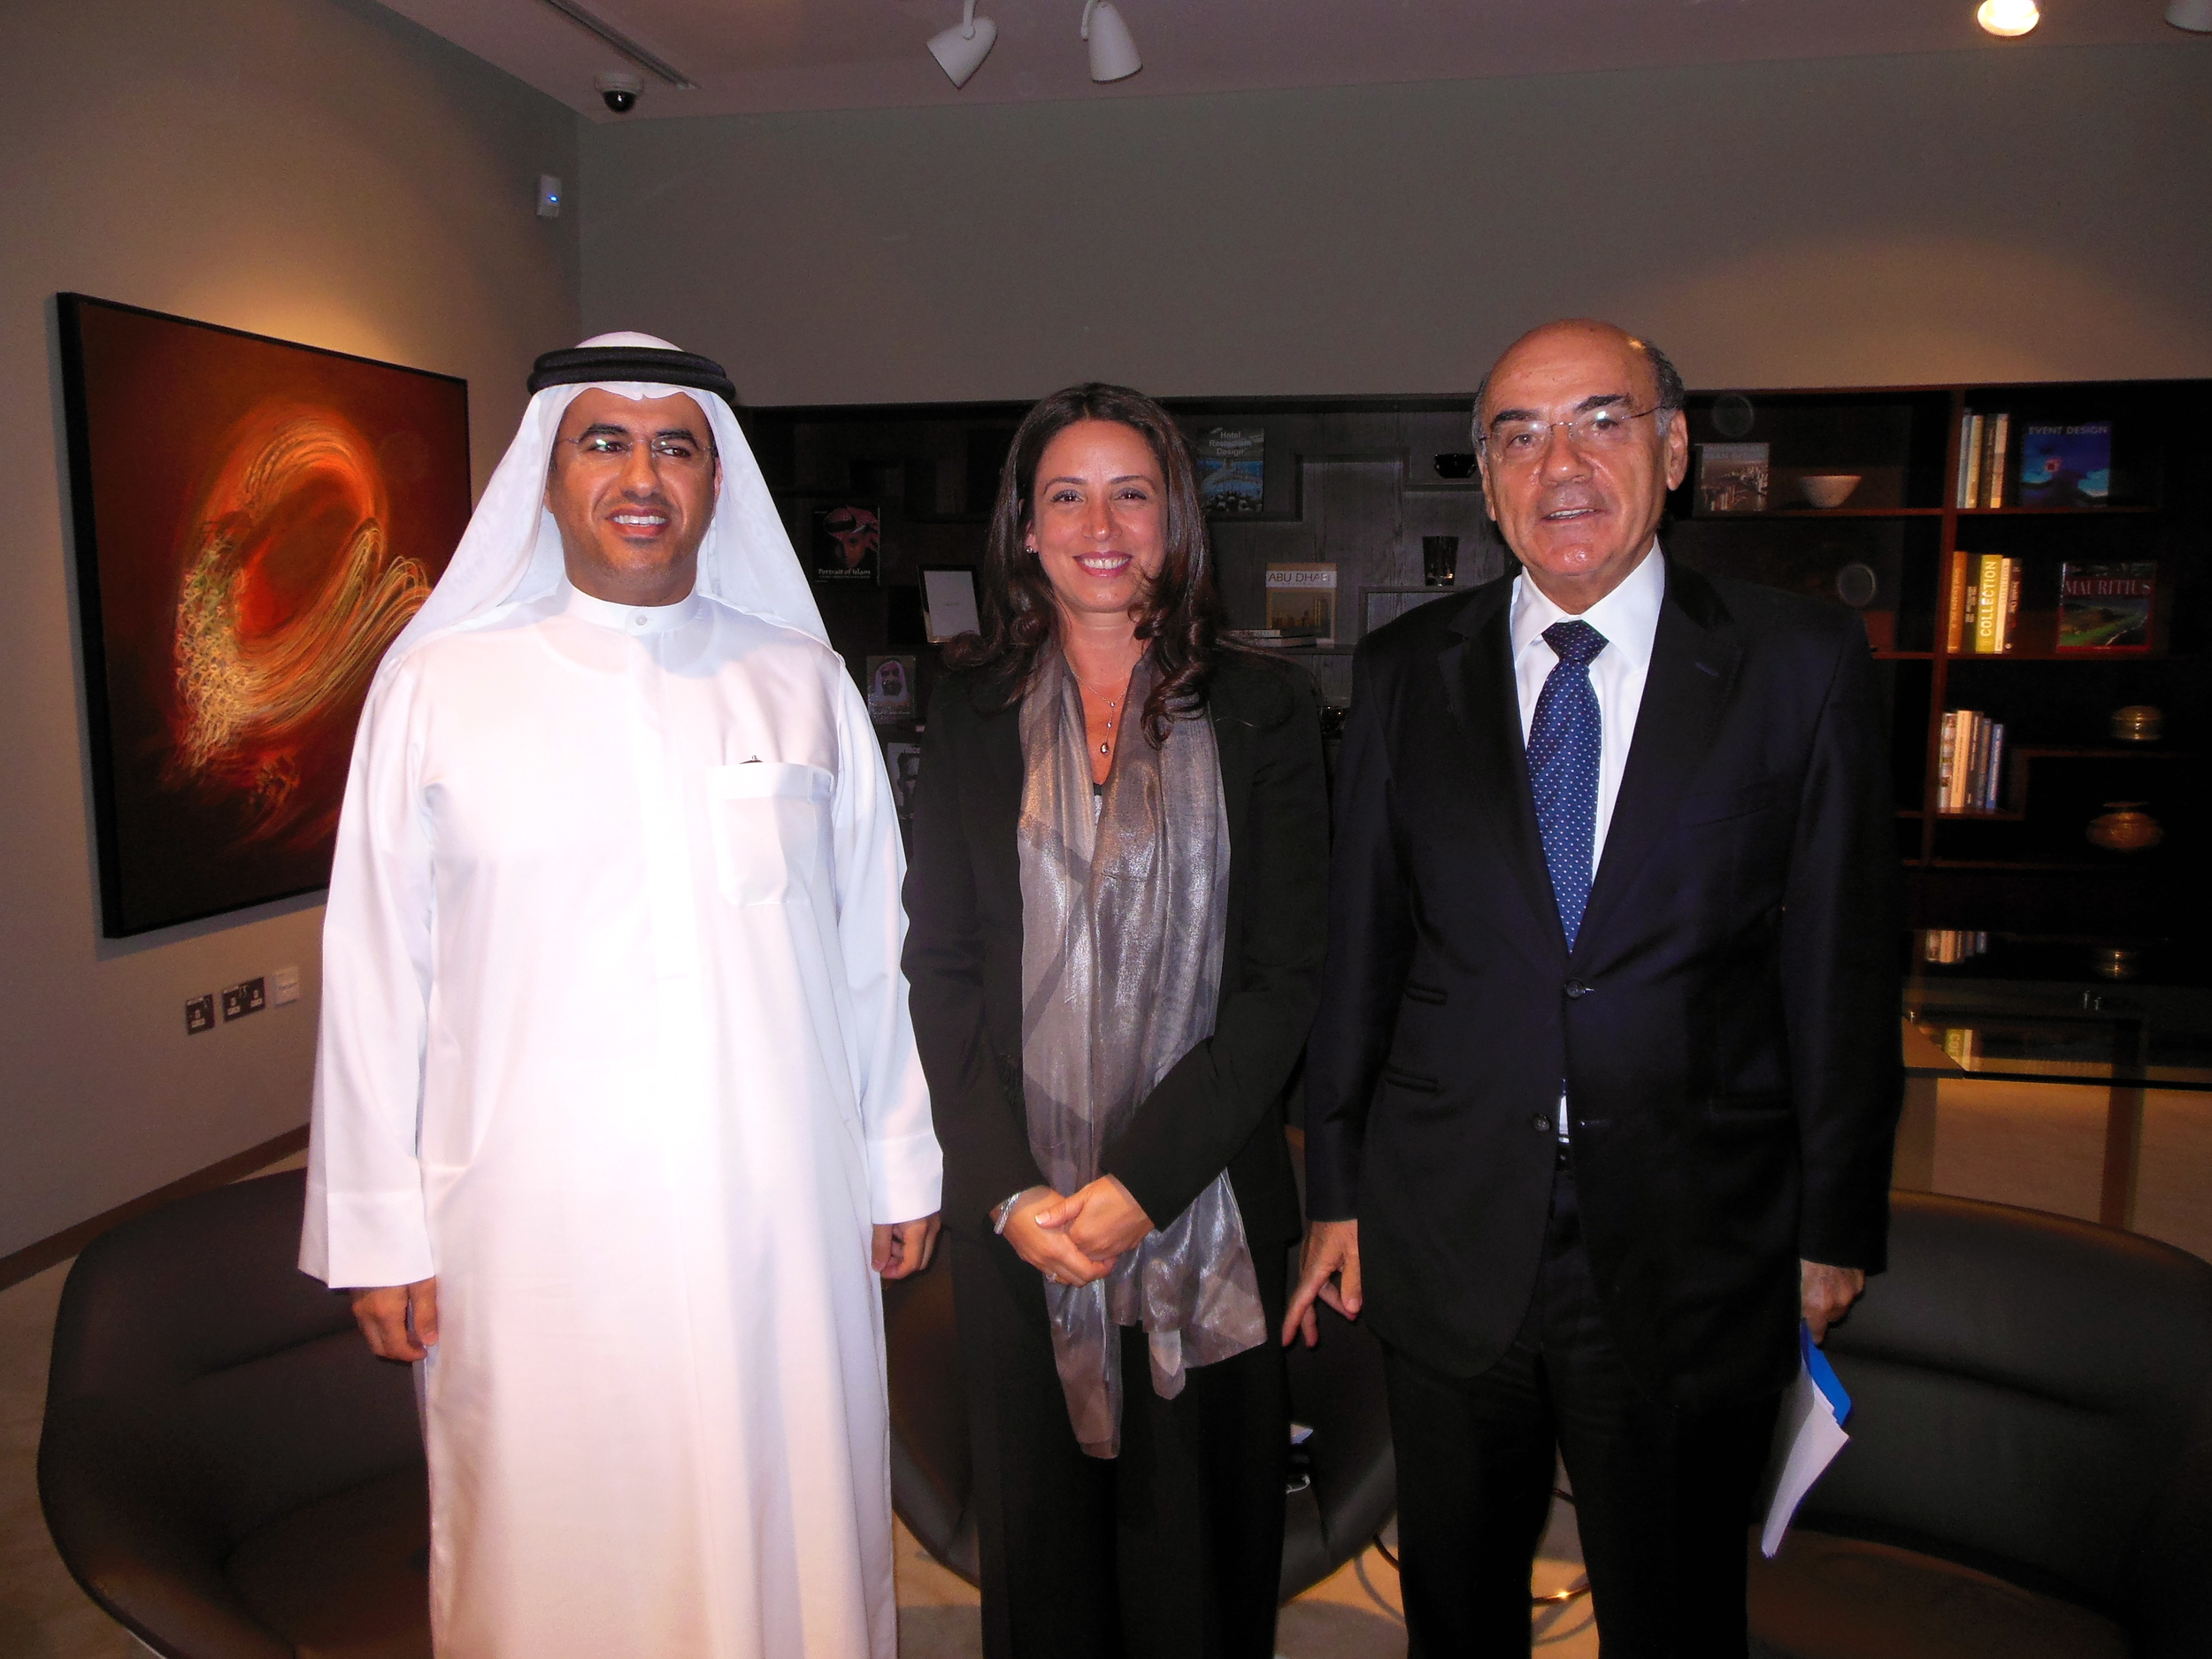 HE Mubarak Al Muhairi, Director General, Abu Dhabi Tourism & Culture Authority, HE Zaki Nusseibeh, Adviser Ministry of Presidential Affairs and Rita Aoun-Abdo, Executive Director, Culture Sector, Abu Dhabi Tourism & Culture Authority. Photo: Lucy Rees